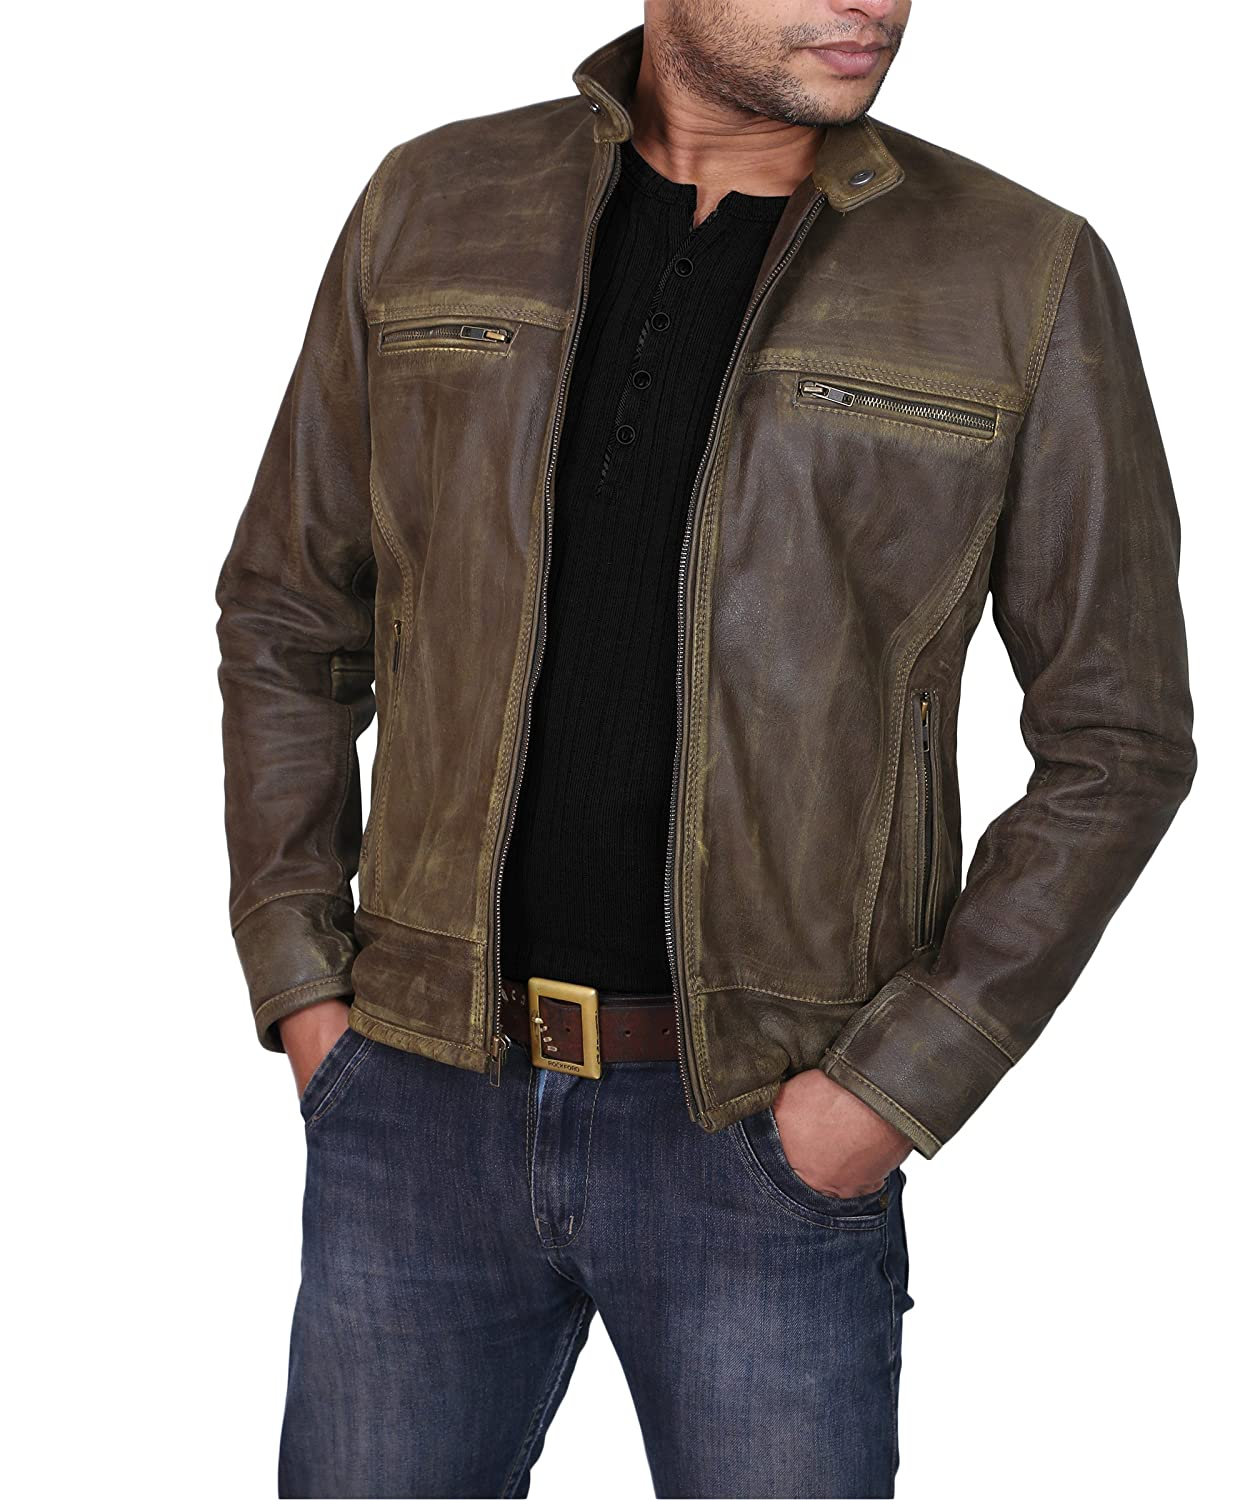 Top 10 Wholesale Cheap Leather Motorcycle Jackets Chinabrands Com